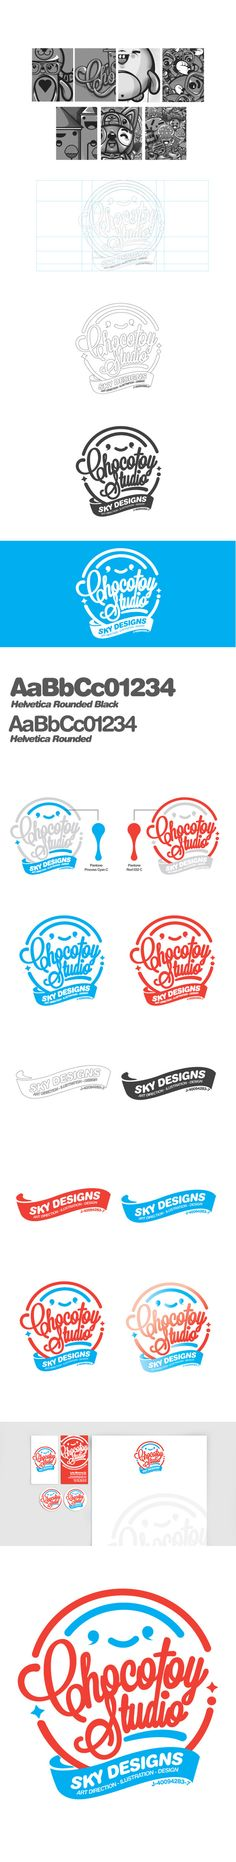 chocotoystudio by ChocoToy , via Behance